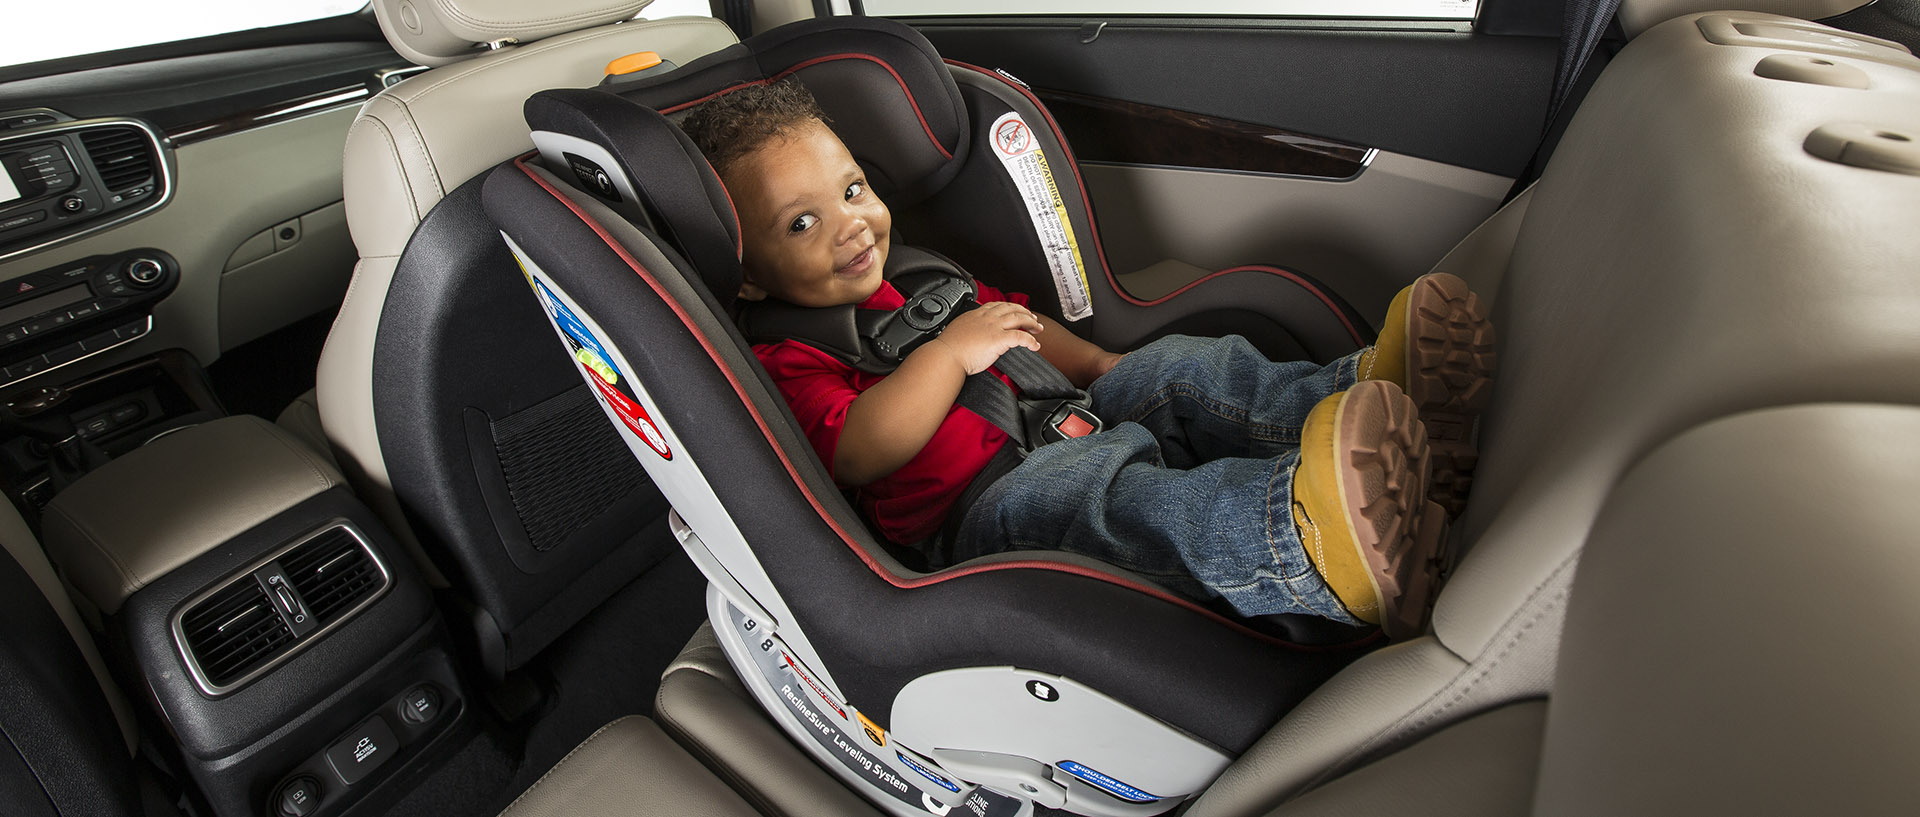 Infant Car Seat In Front Passenger Seat